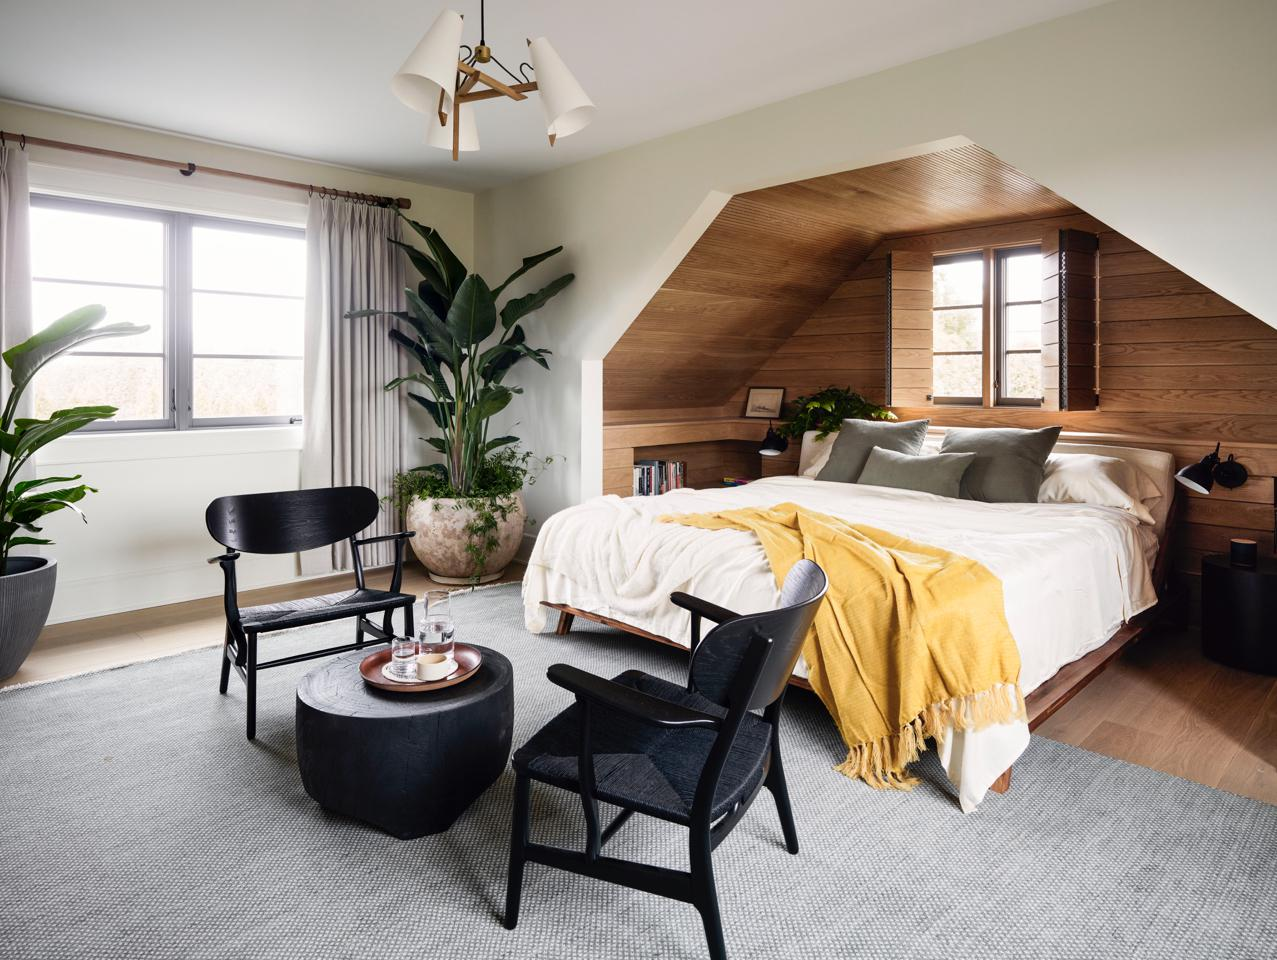 homestory-hamptons-general-assembly-schlafzimmer-holz-nische-decohome.de_